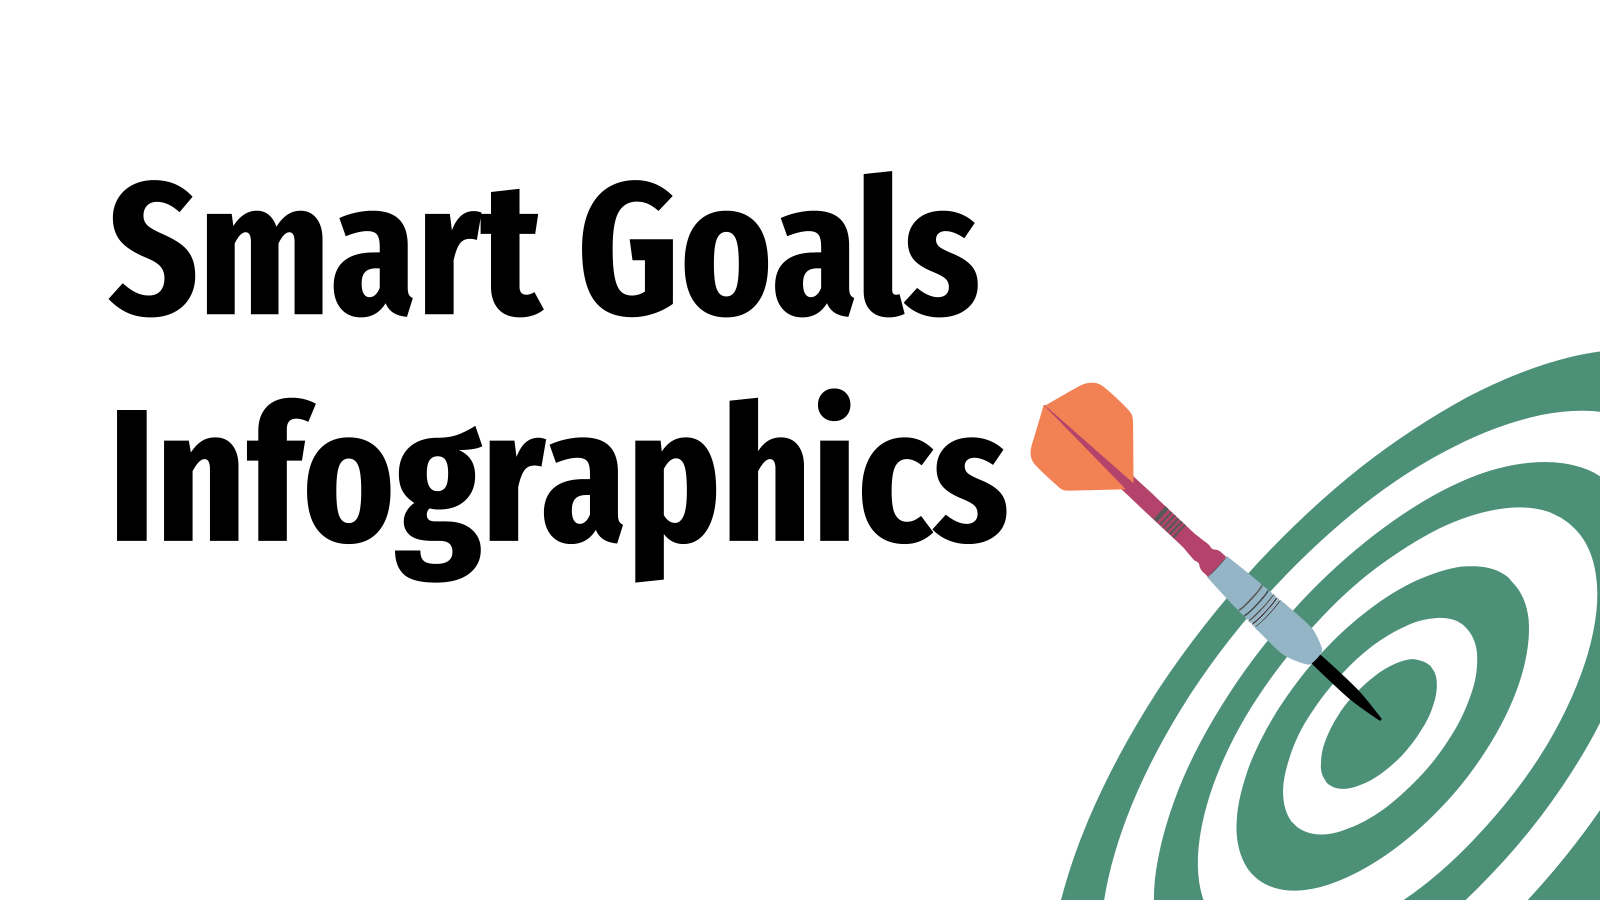 Smart Goals infographics presentation template